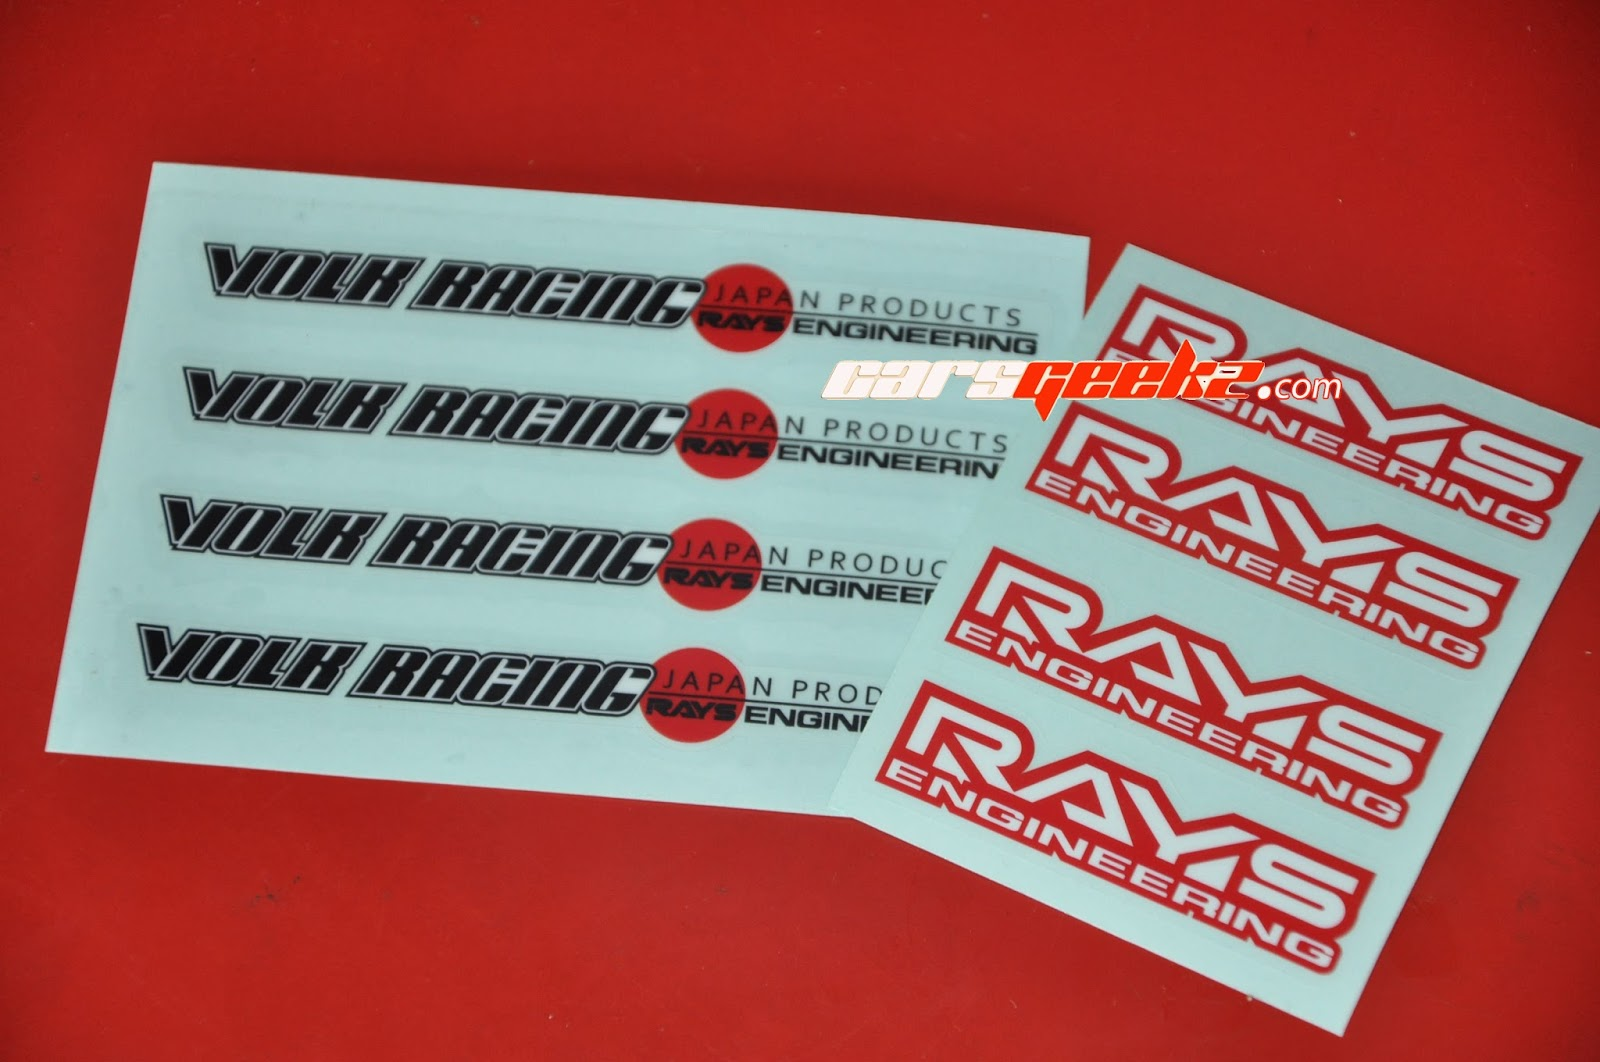 Volk Racing Japan Product and Rays Engineering Volk Racing Japan Product and Rays Engineering Sticker